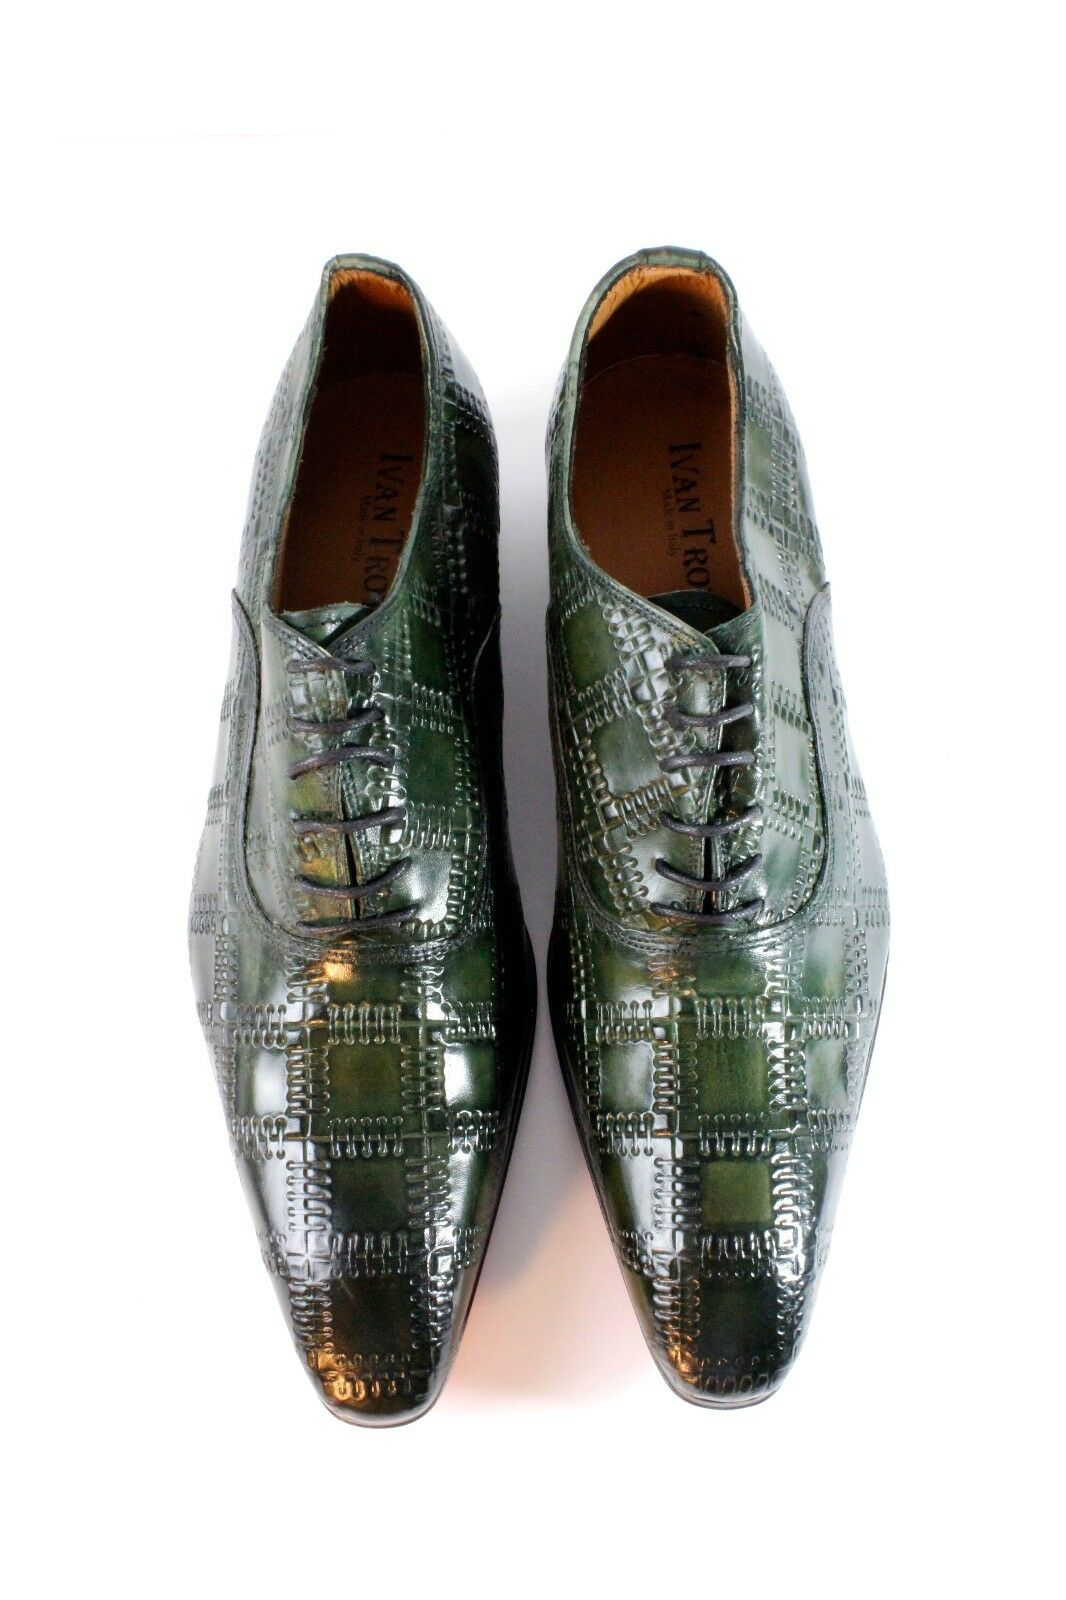 Ivan Troy Green Handmade Patchwork Shoes/Oxford Uomo Italian Pelle Dress Shoes/Oxford Patchwork Shoes 1d4639